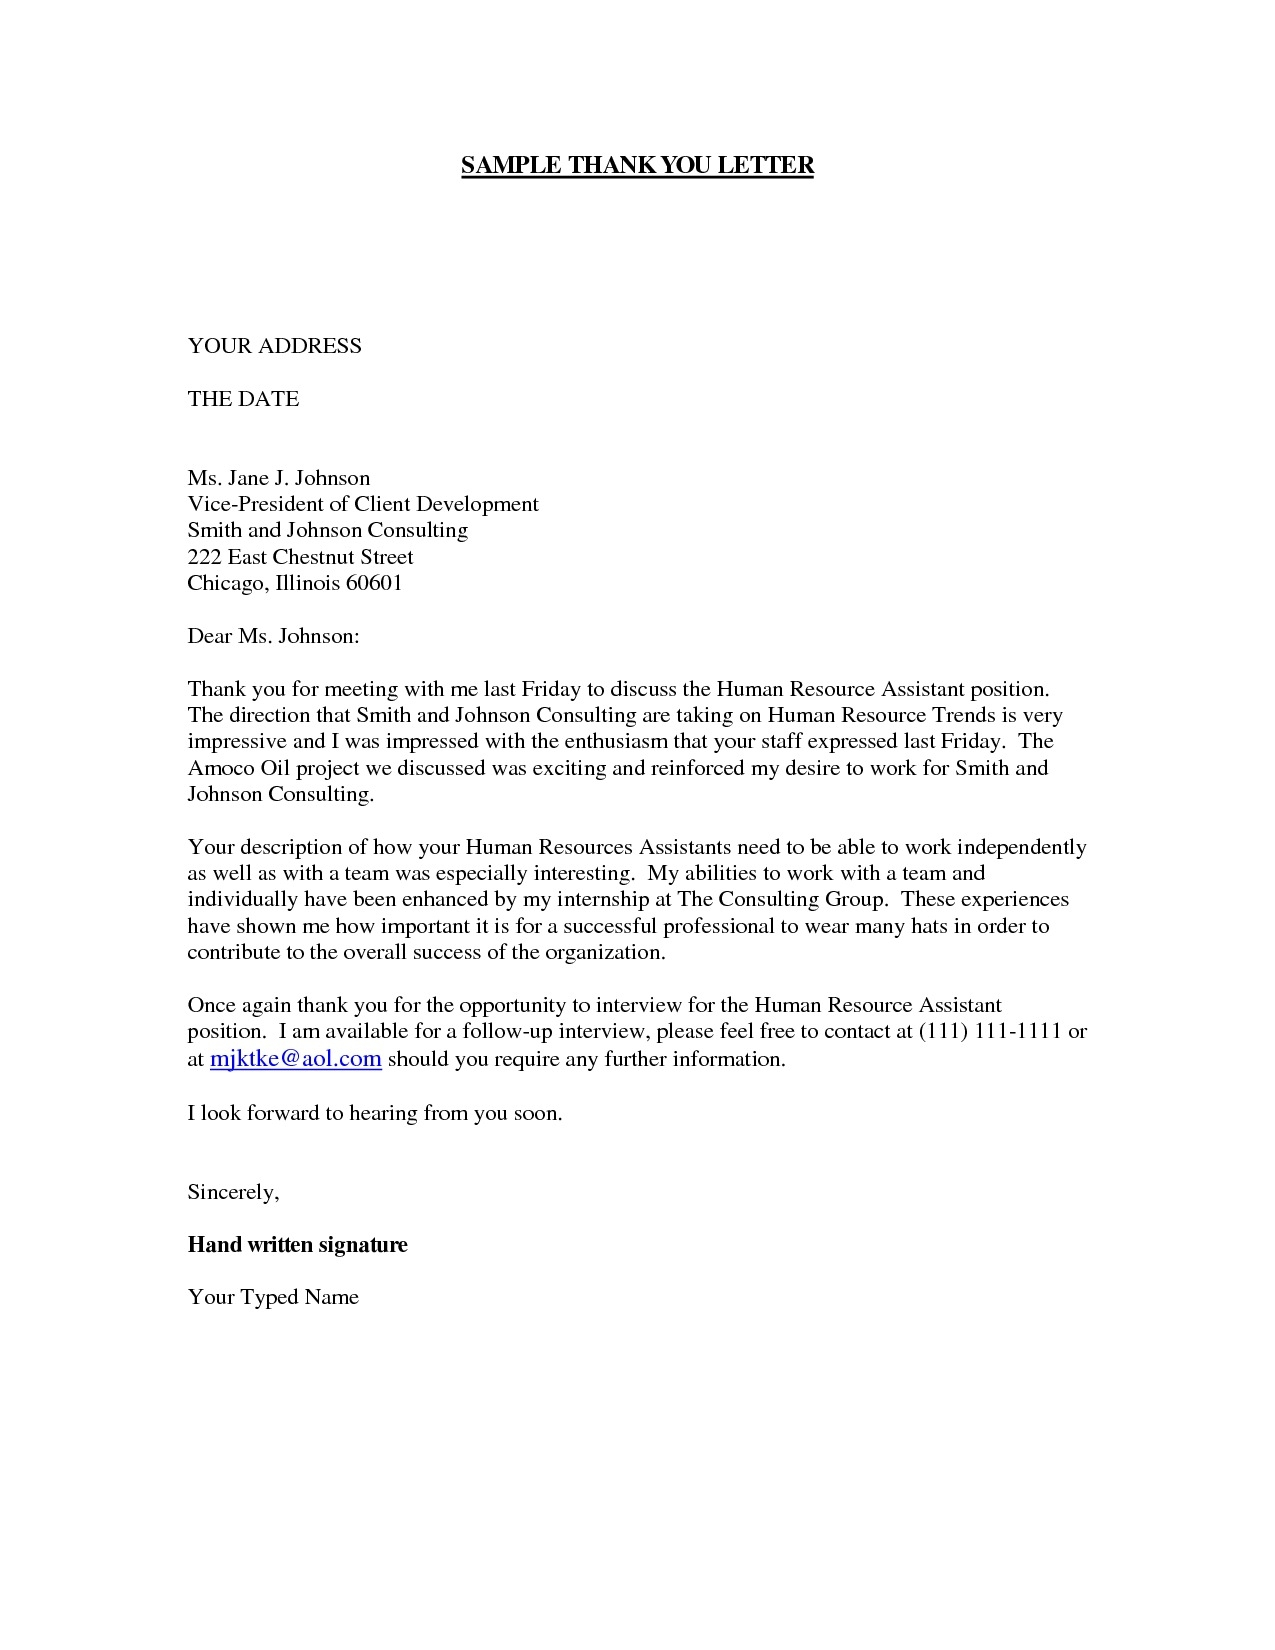 Personal Fundraising Letter Template - Personal Thank You Letter Template Acurnamedia